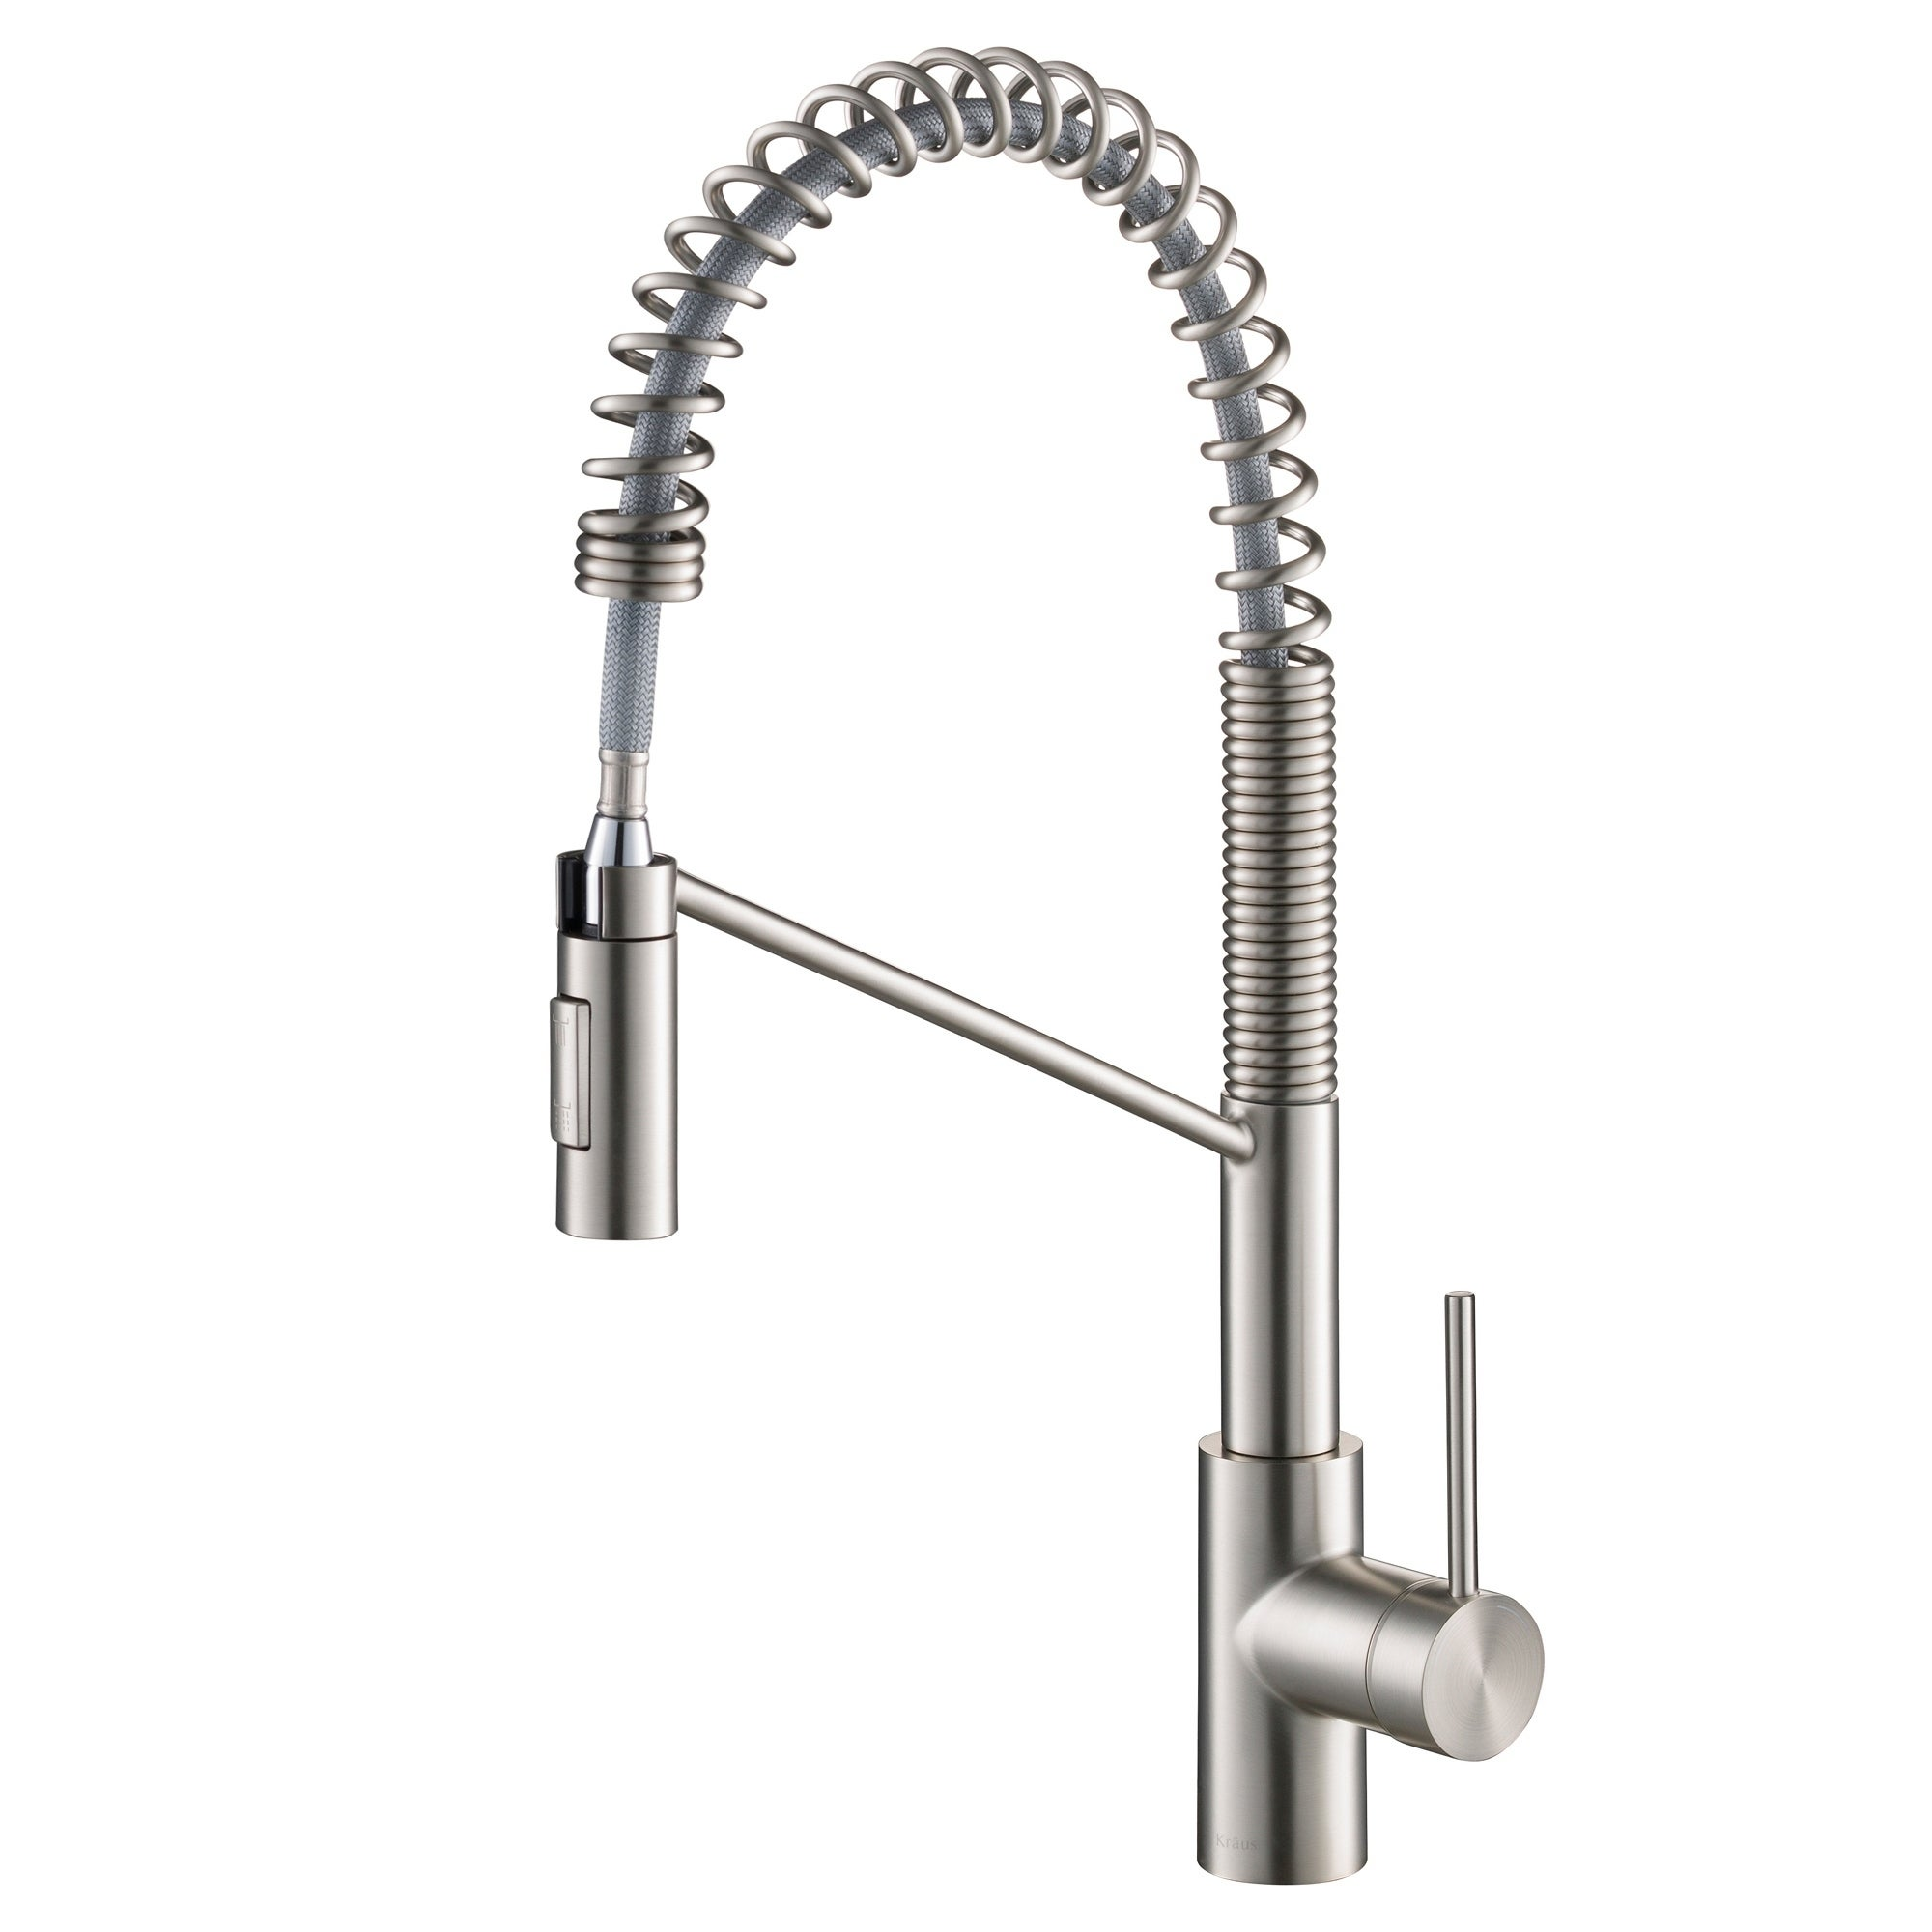 Kraus Kpf 2631 Oletto 1 Handle 2 Function Sprayhead Commercial Pull Down Kitchen Faucet